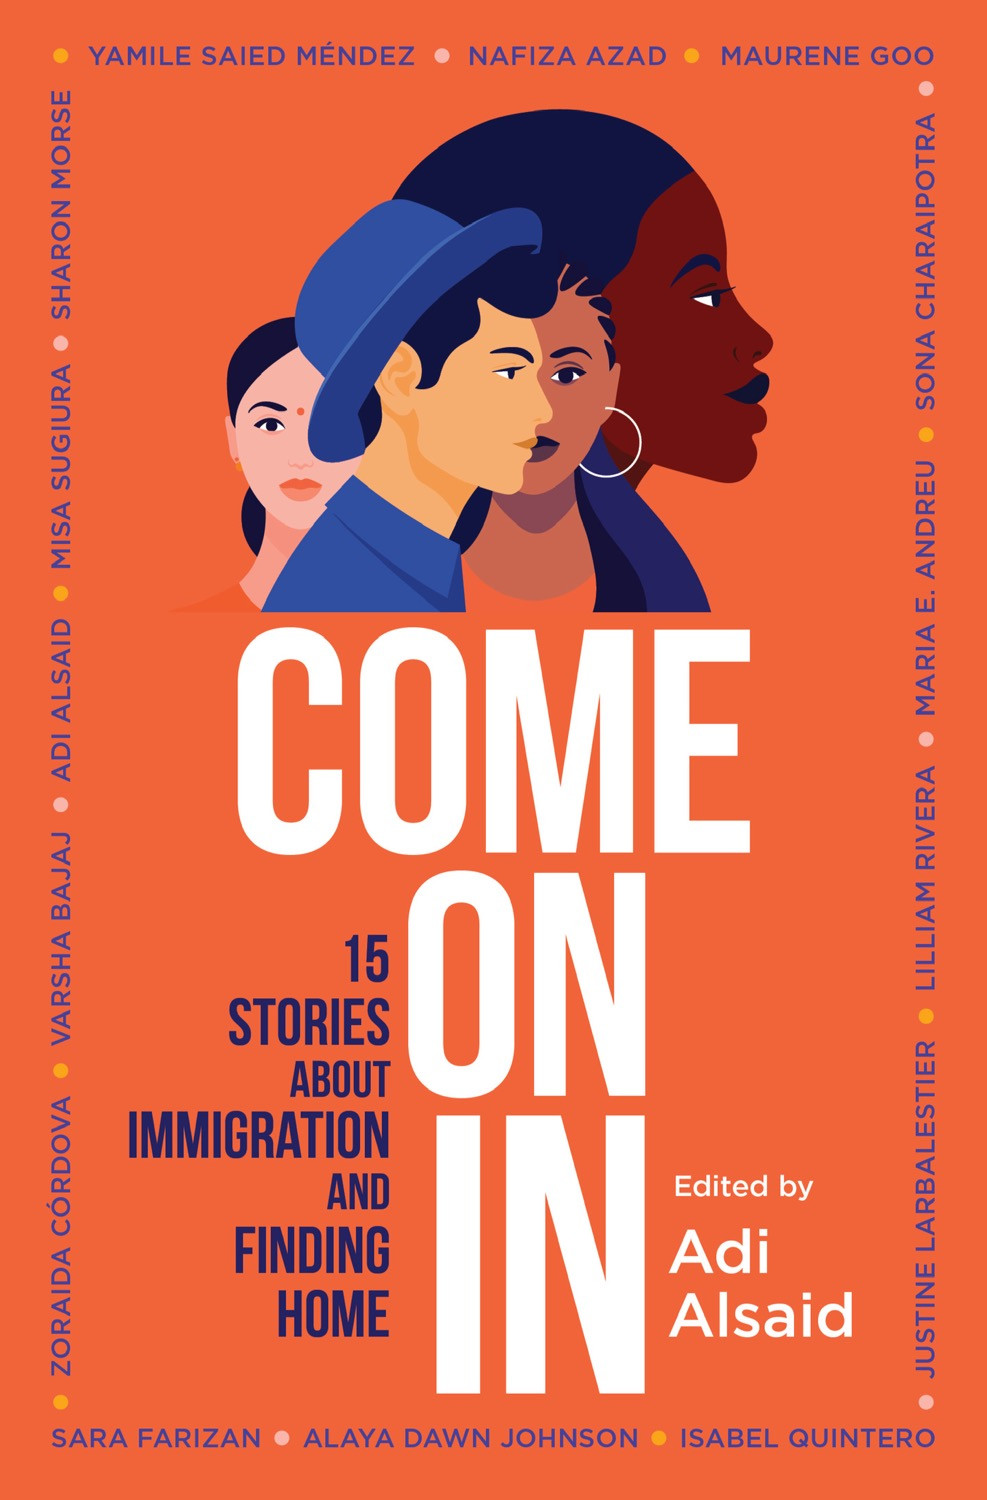 Book Cover: Come On In edited by Adi Alsaid - 10 YA Books Out in October 2020 - Two Arts in a World